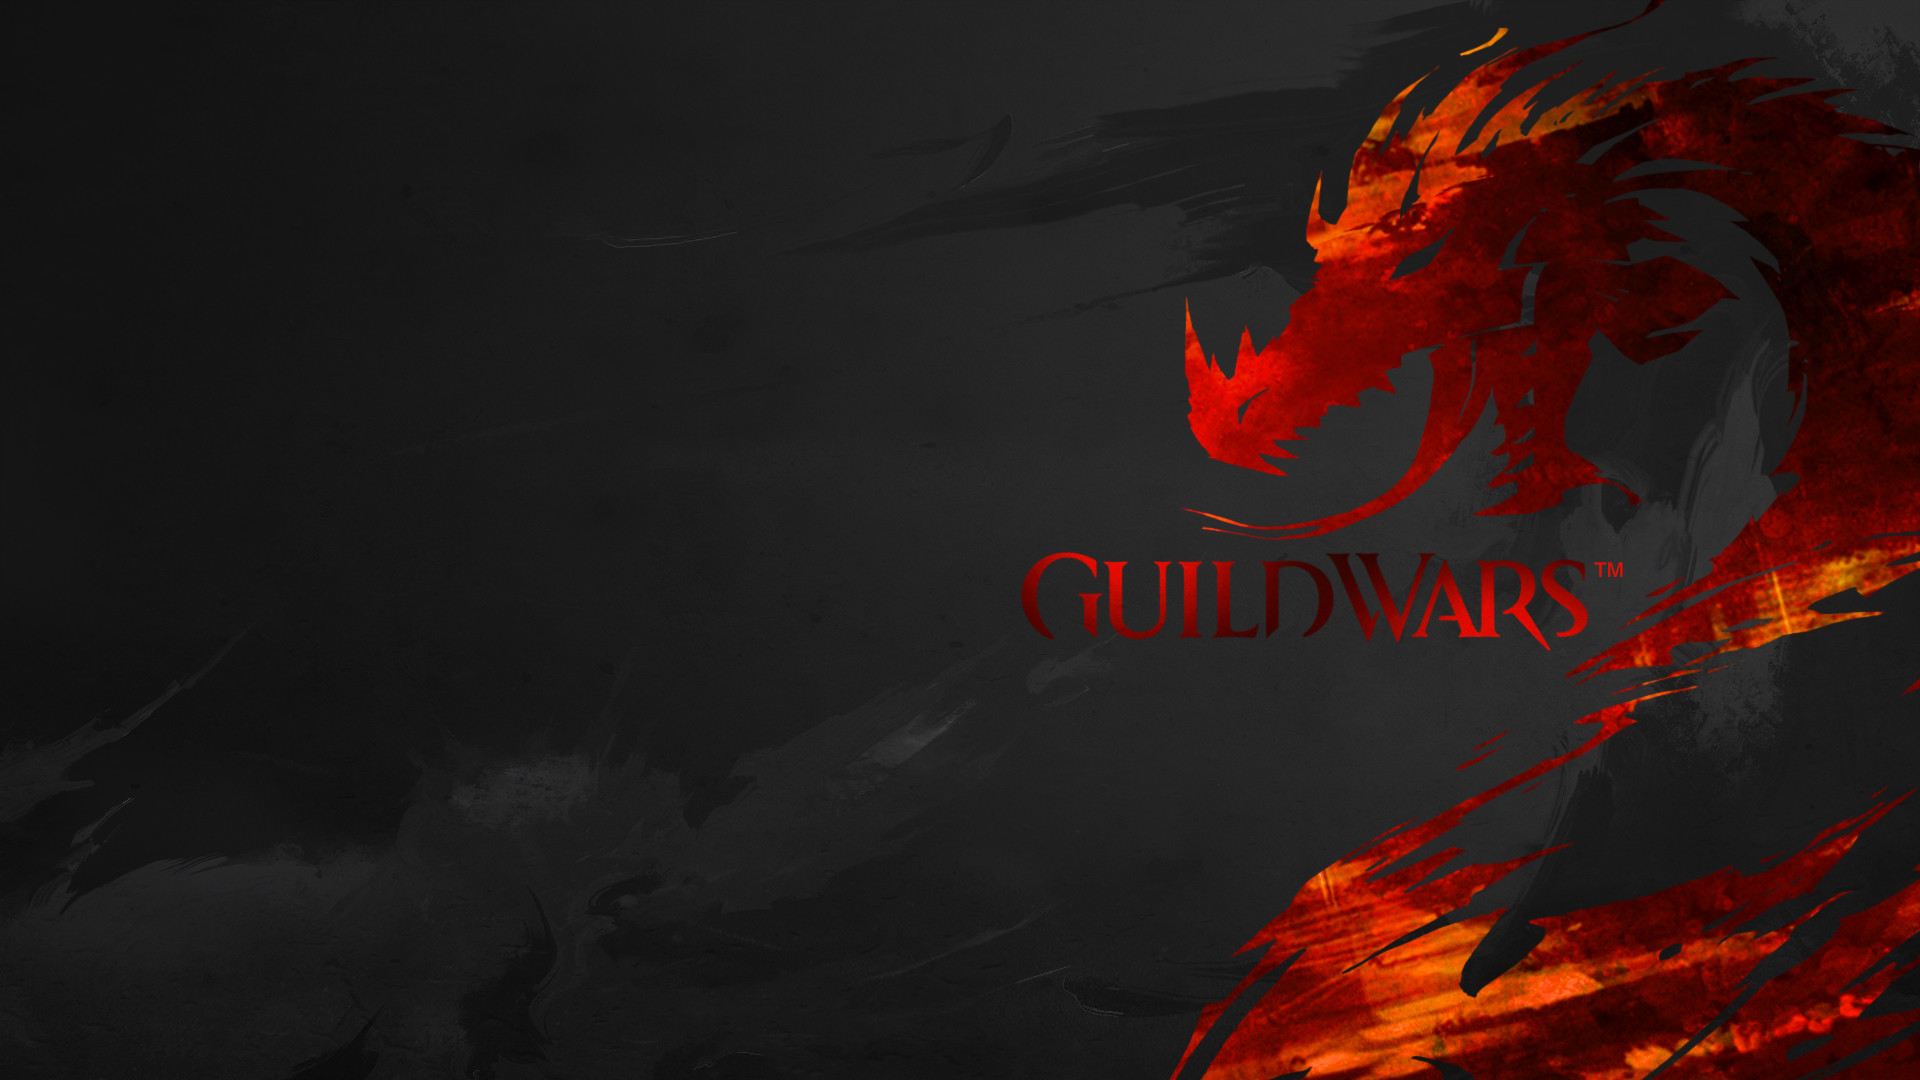 Guild Wars 2 Full Hd Wallpaper And Background Image: HD Guild Wars 2 Wallpaper (84+ Images